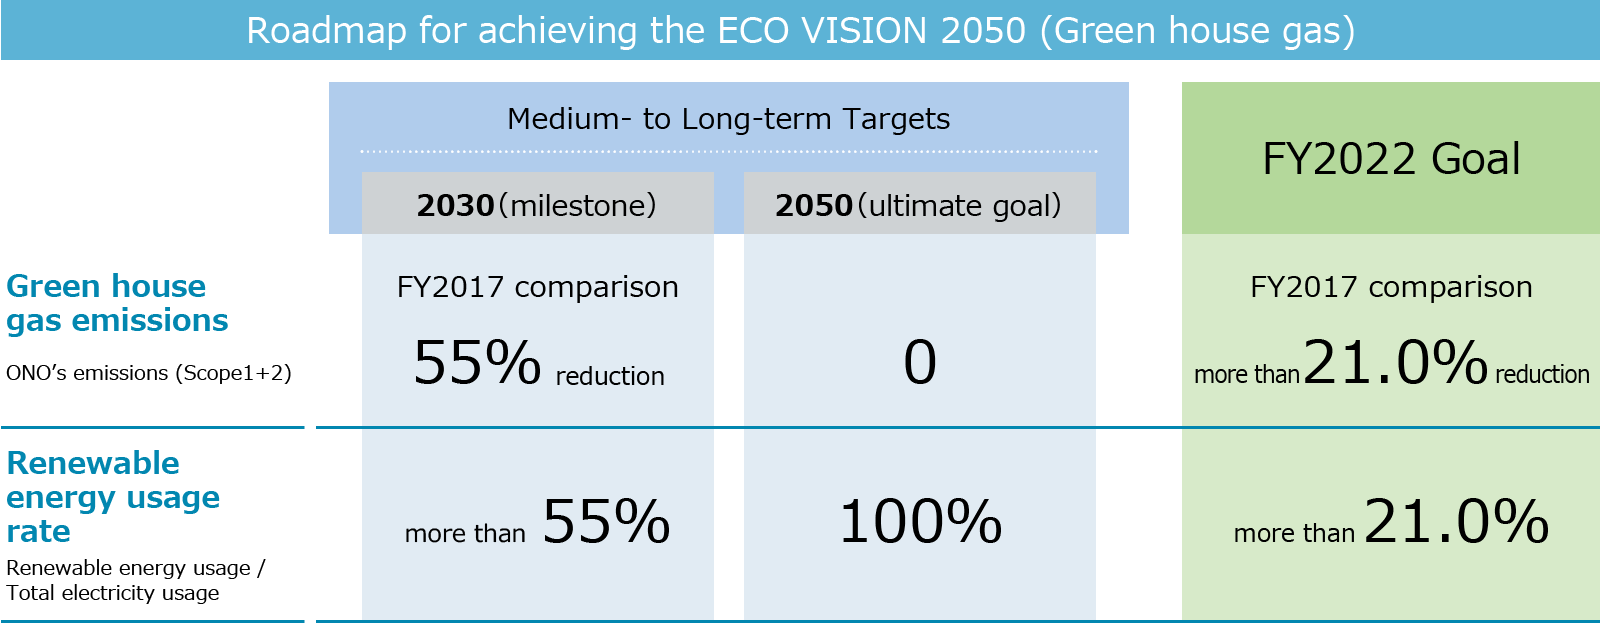 Roadmap for achieving the ECO VISION 2050